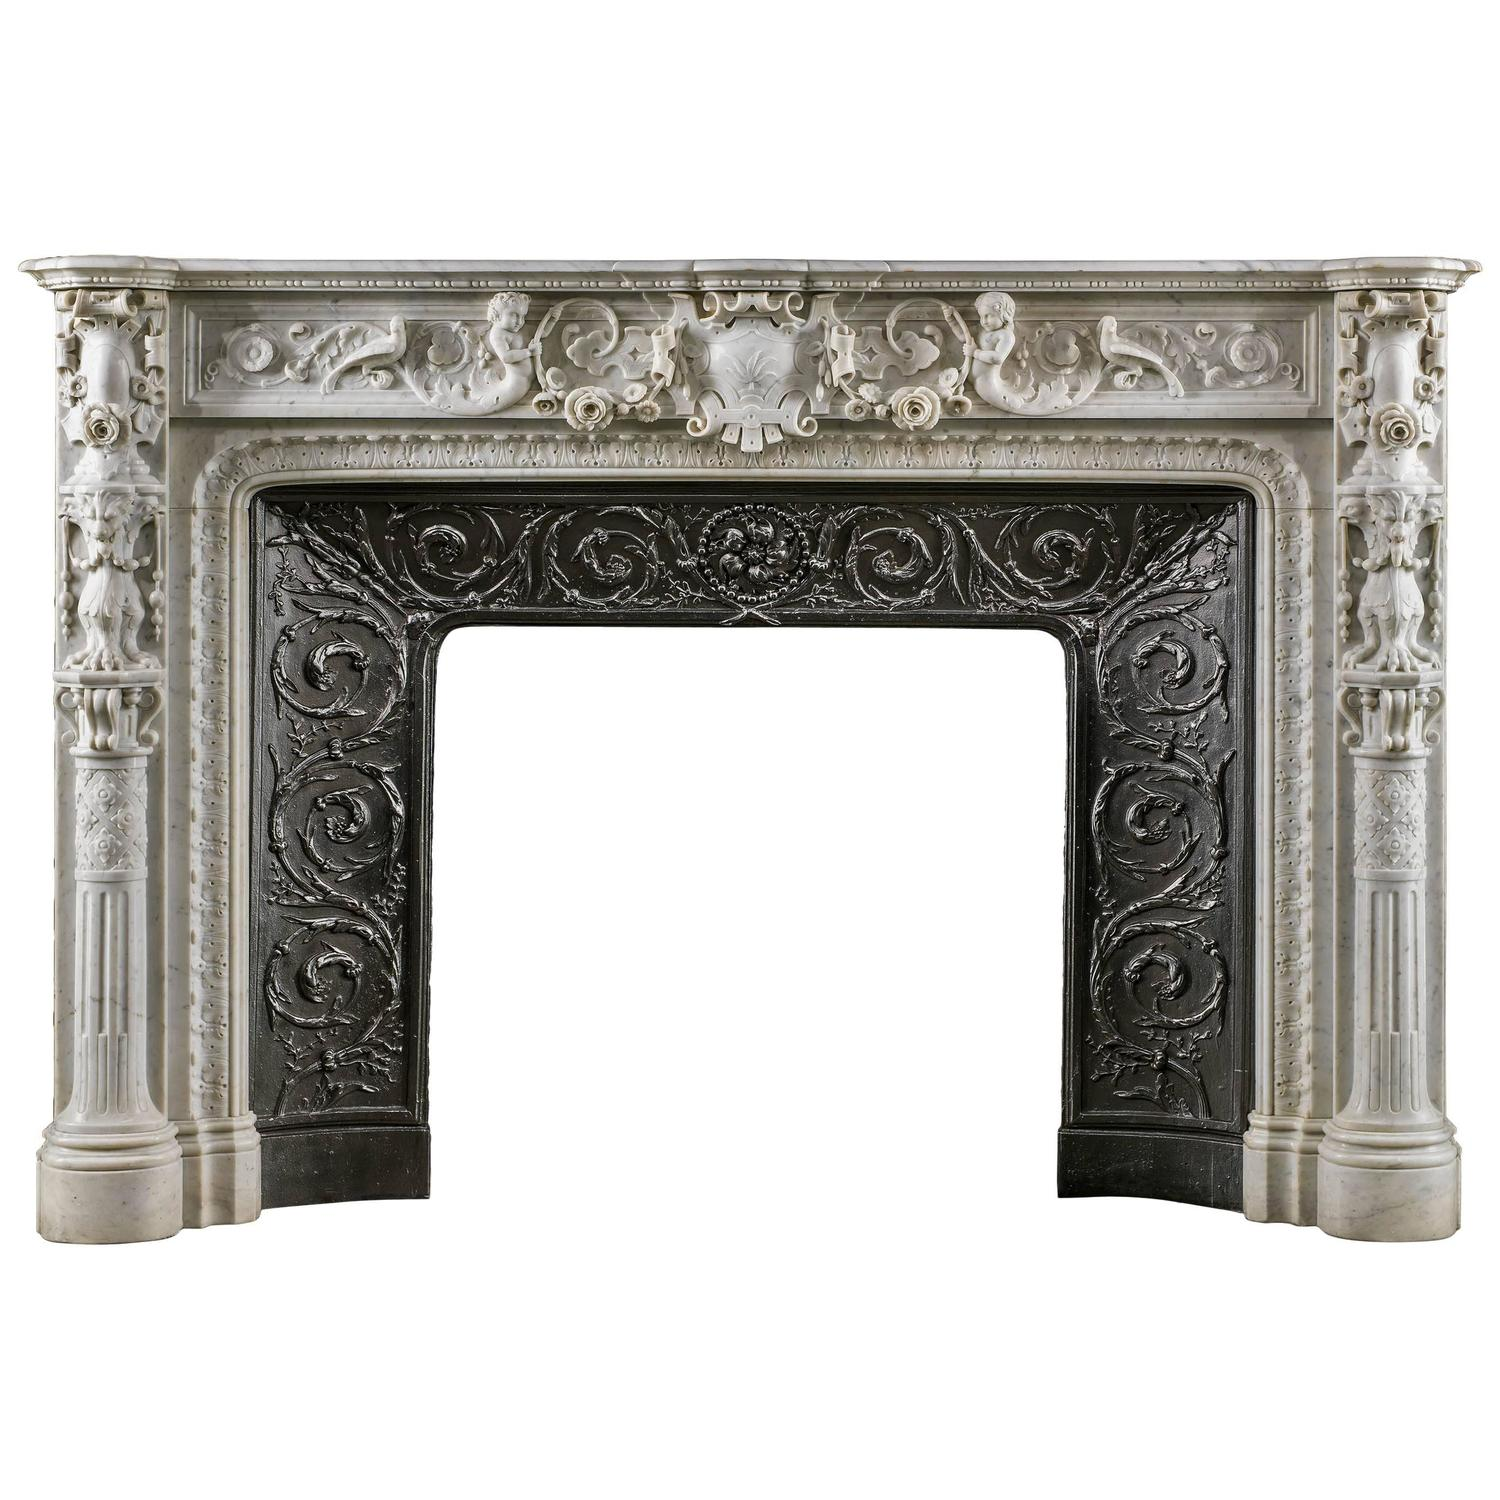 Small Italian Renaissance Style Antique Marble Fireplace Mantel At 1stdibs